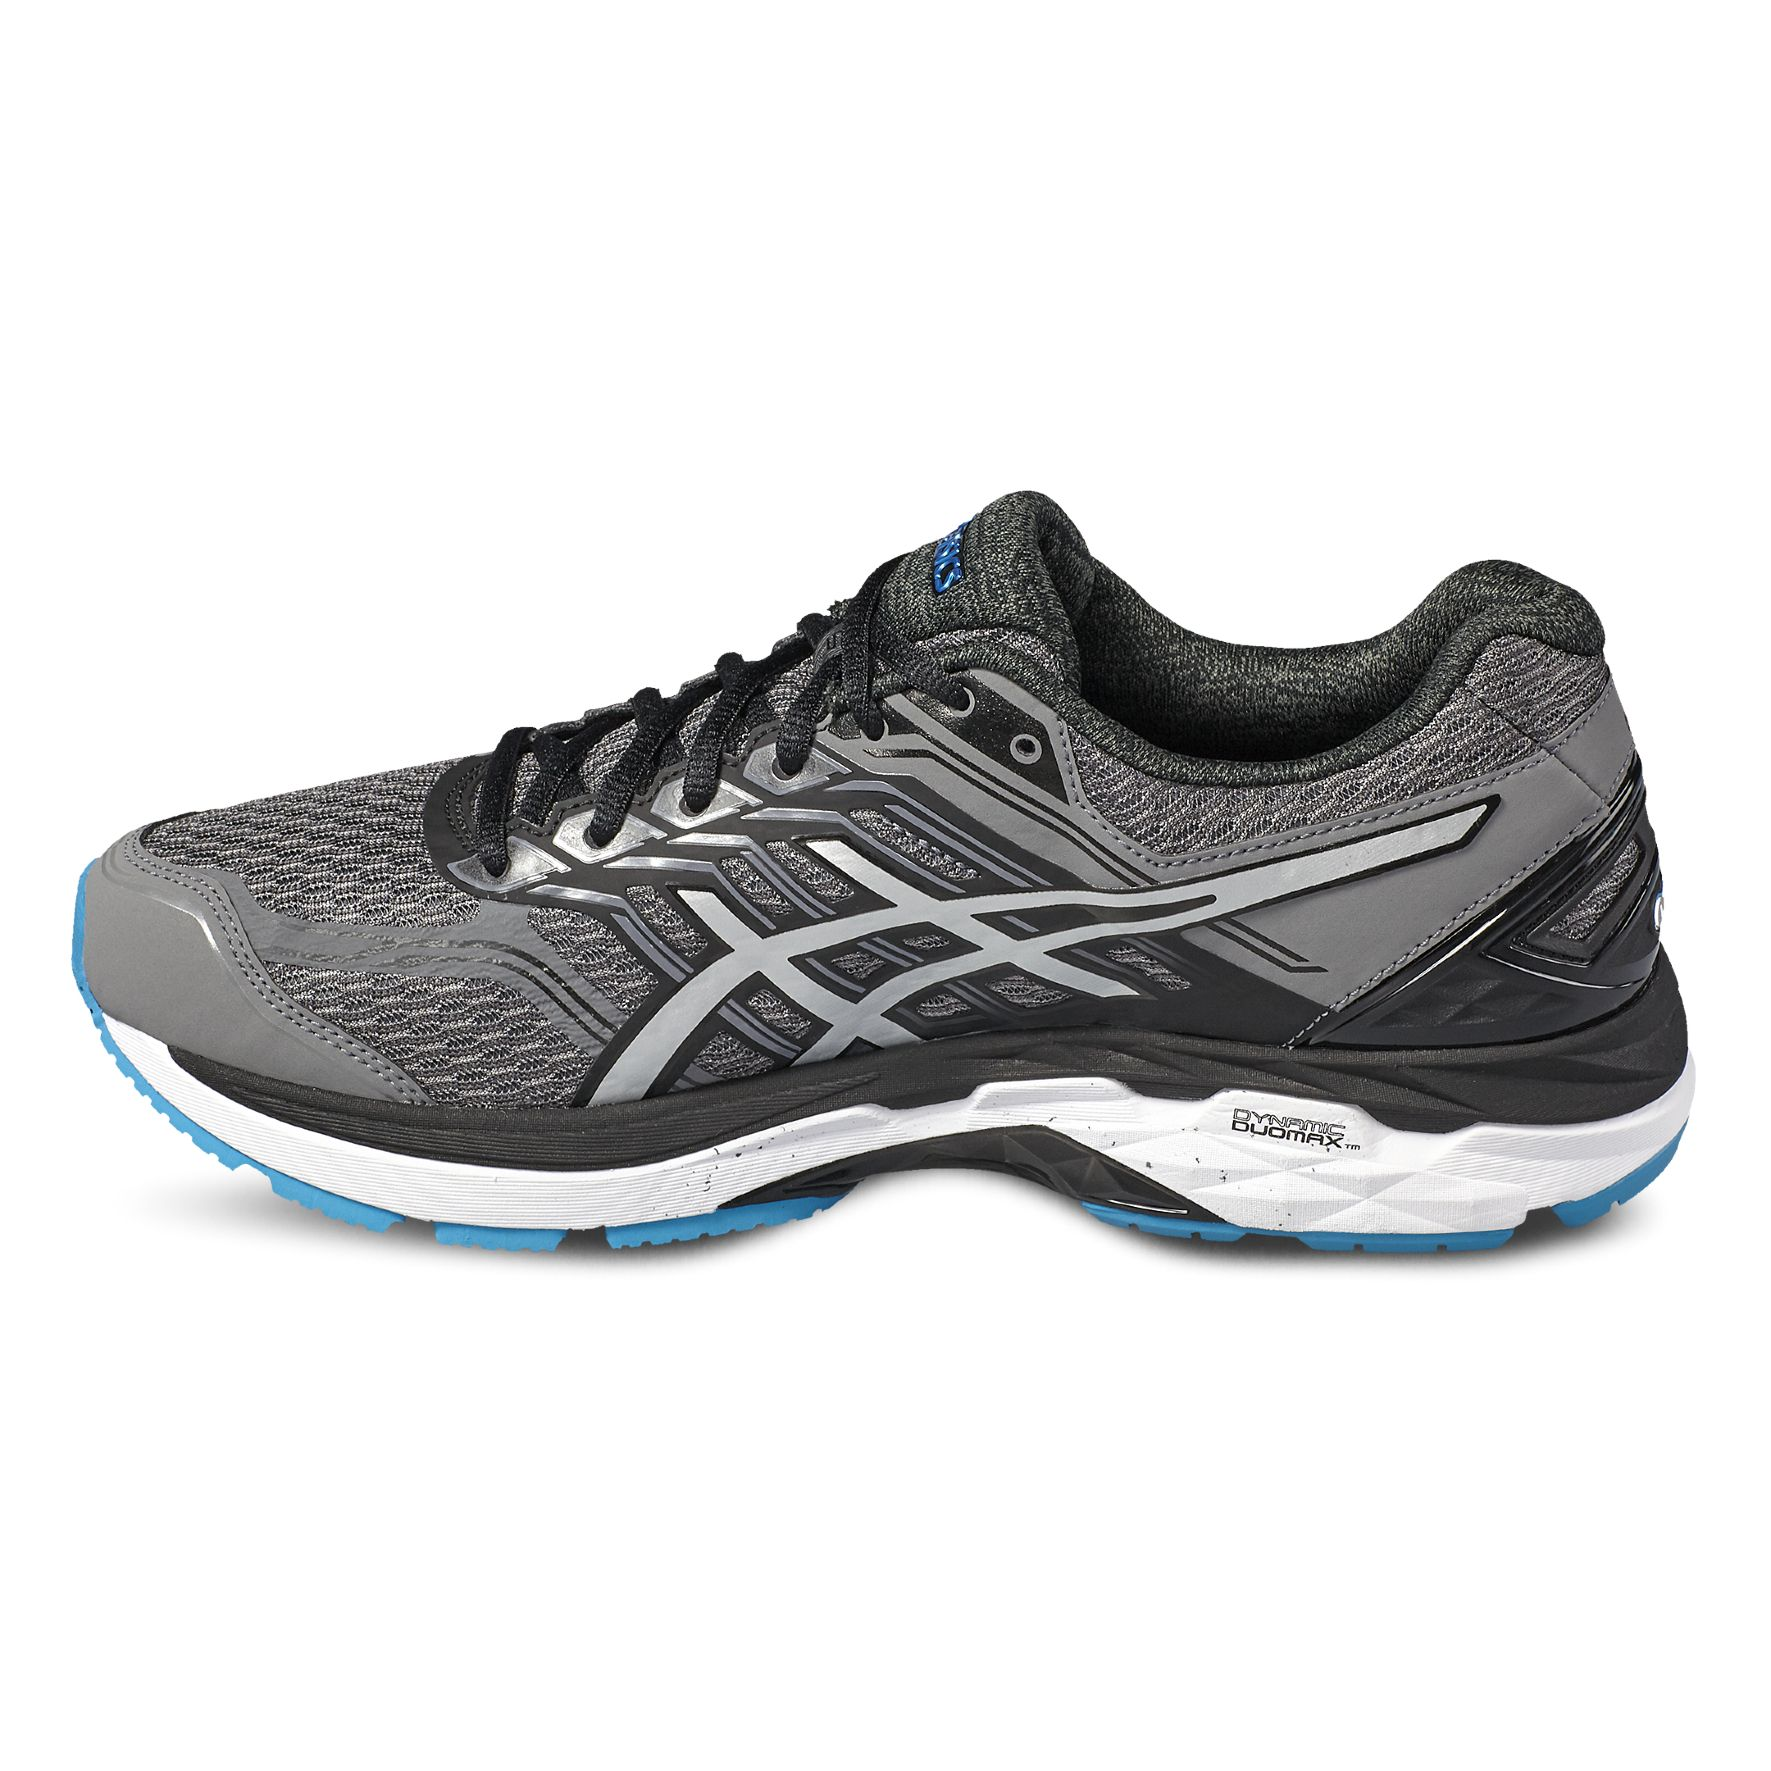 Asics Running Shoes Size Up